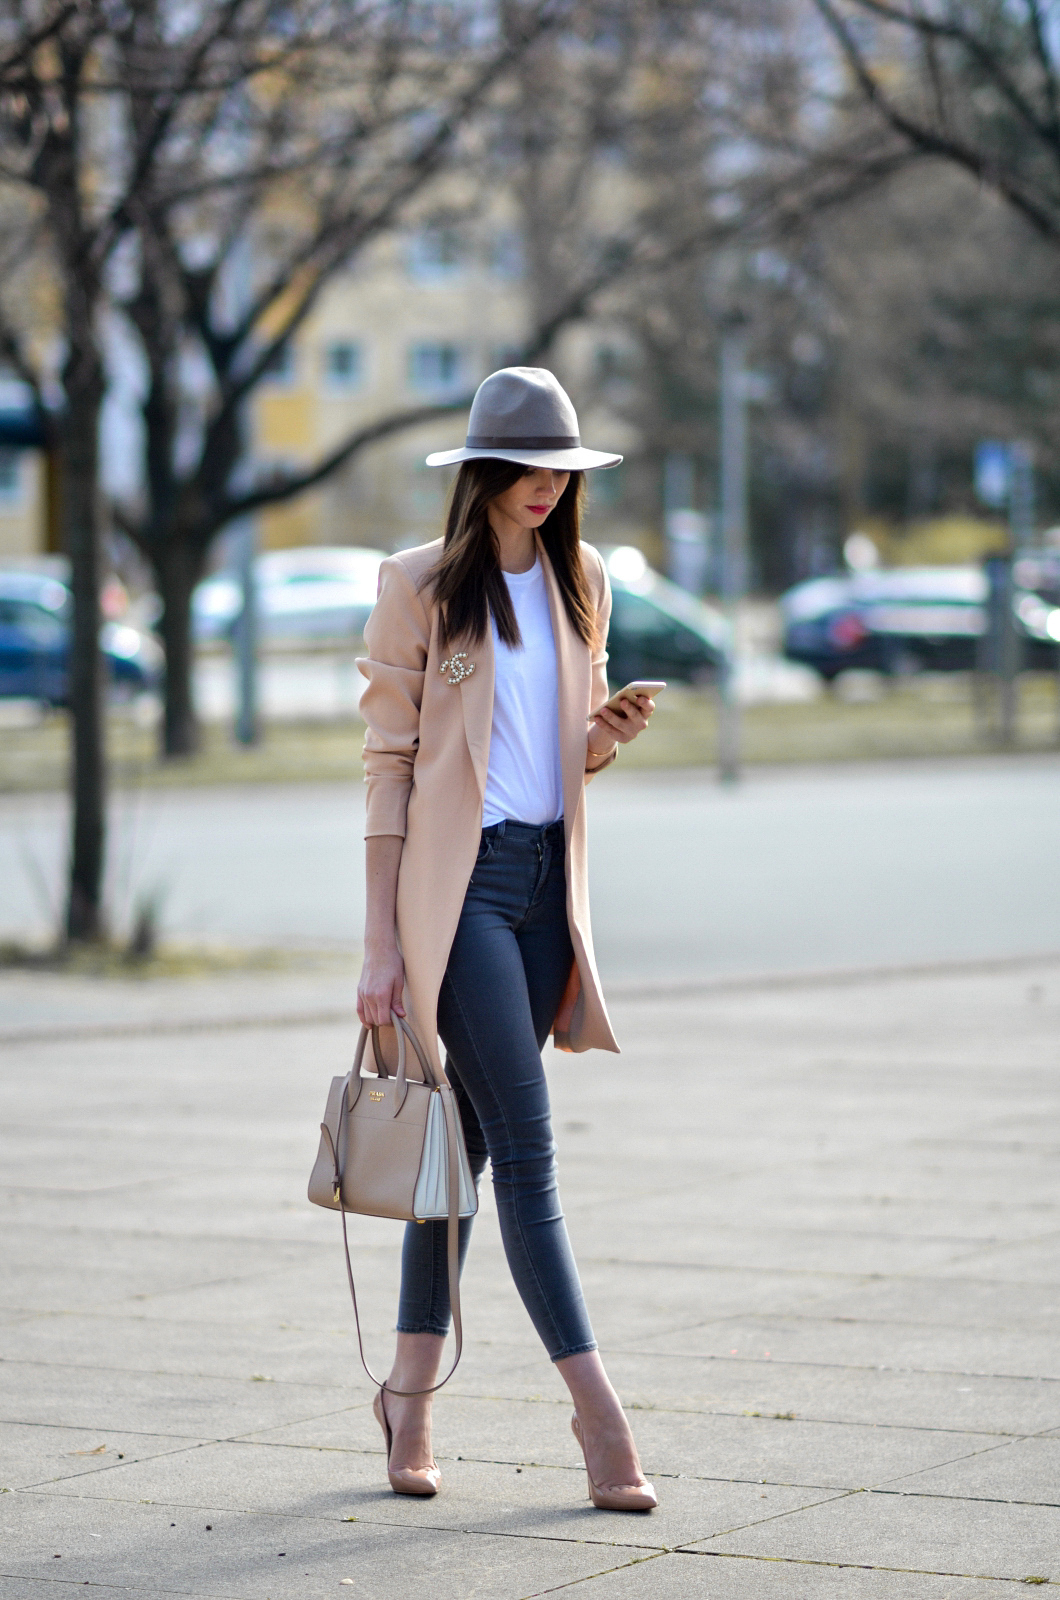 Outfits with heels and beige blazer